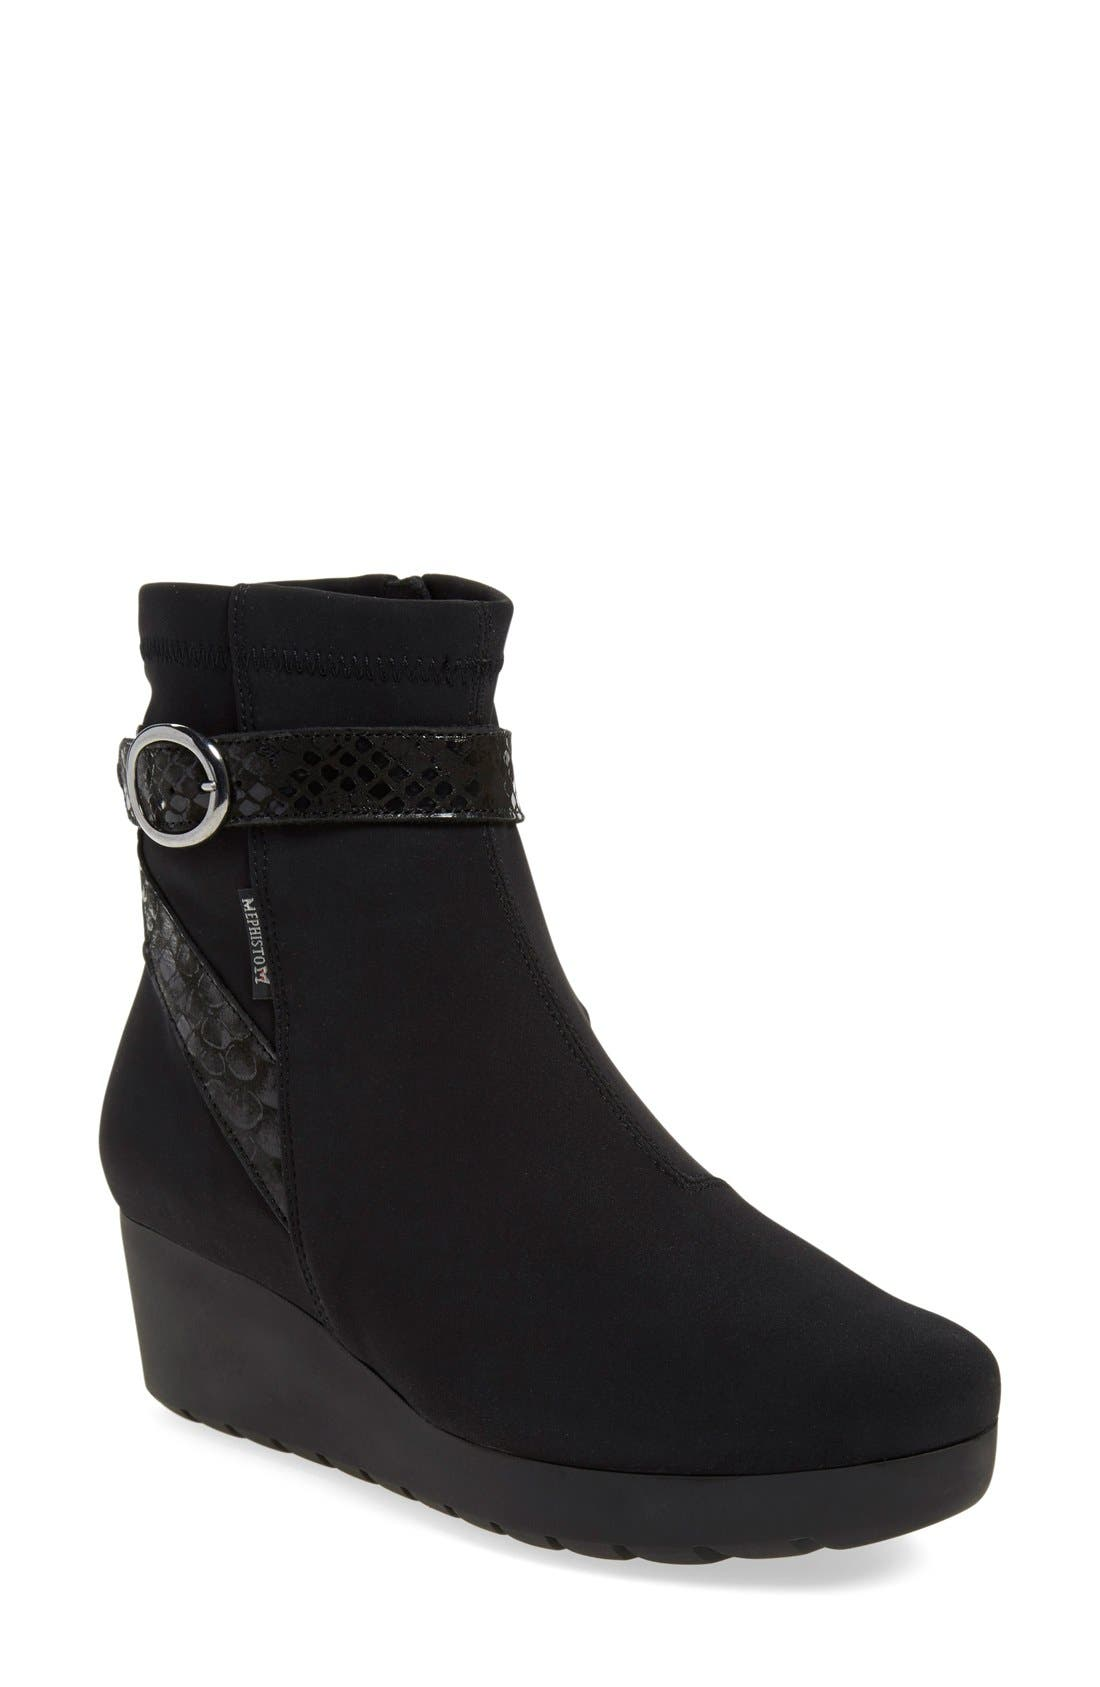 'Tyba' Waterproof Wedge Bootie,                             Main thumbnail 1, color,